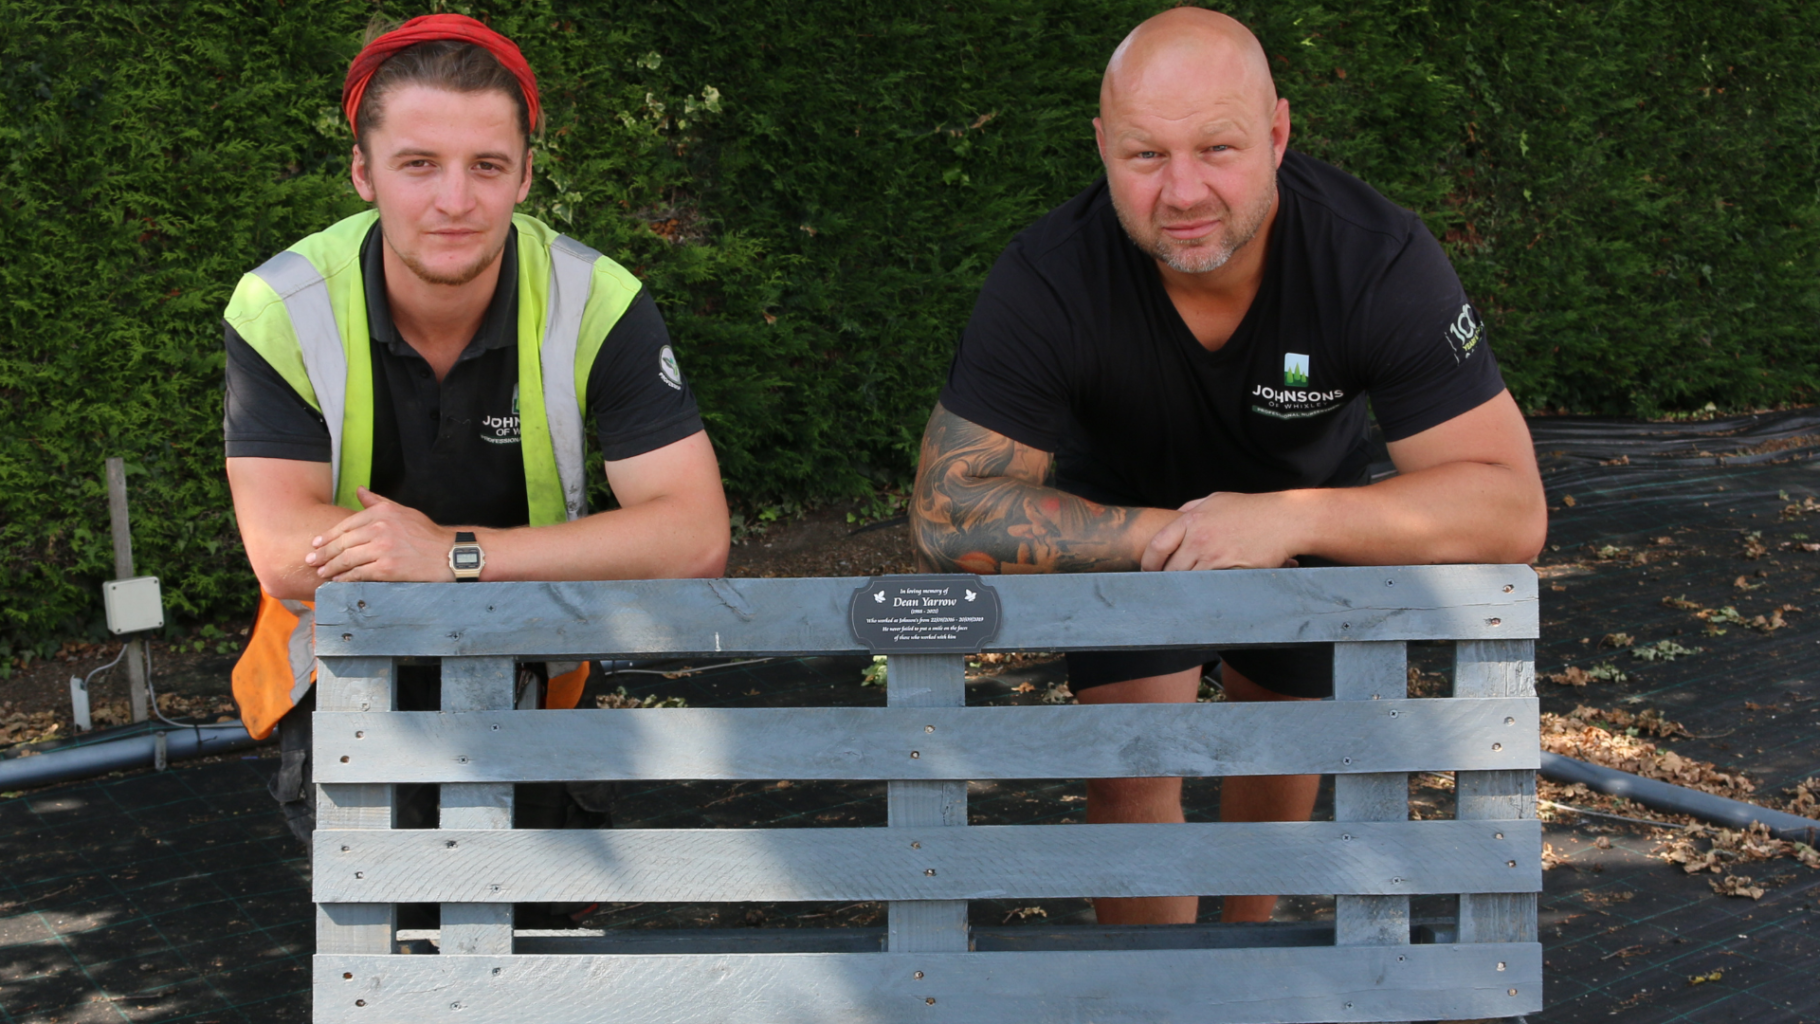 Memorial bench pays tribute to past employee